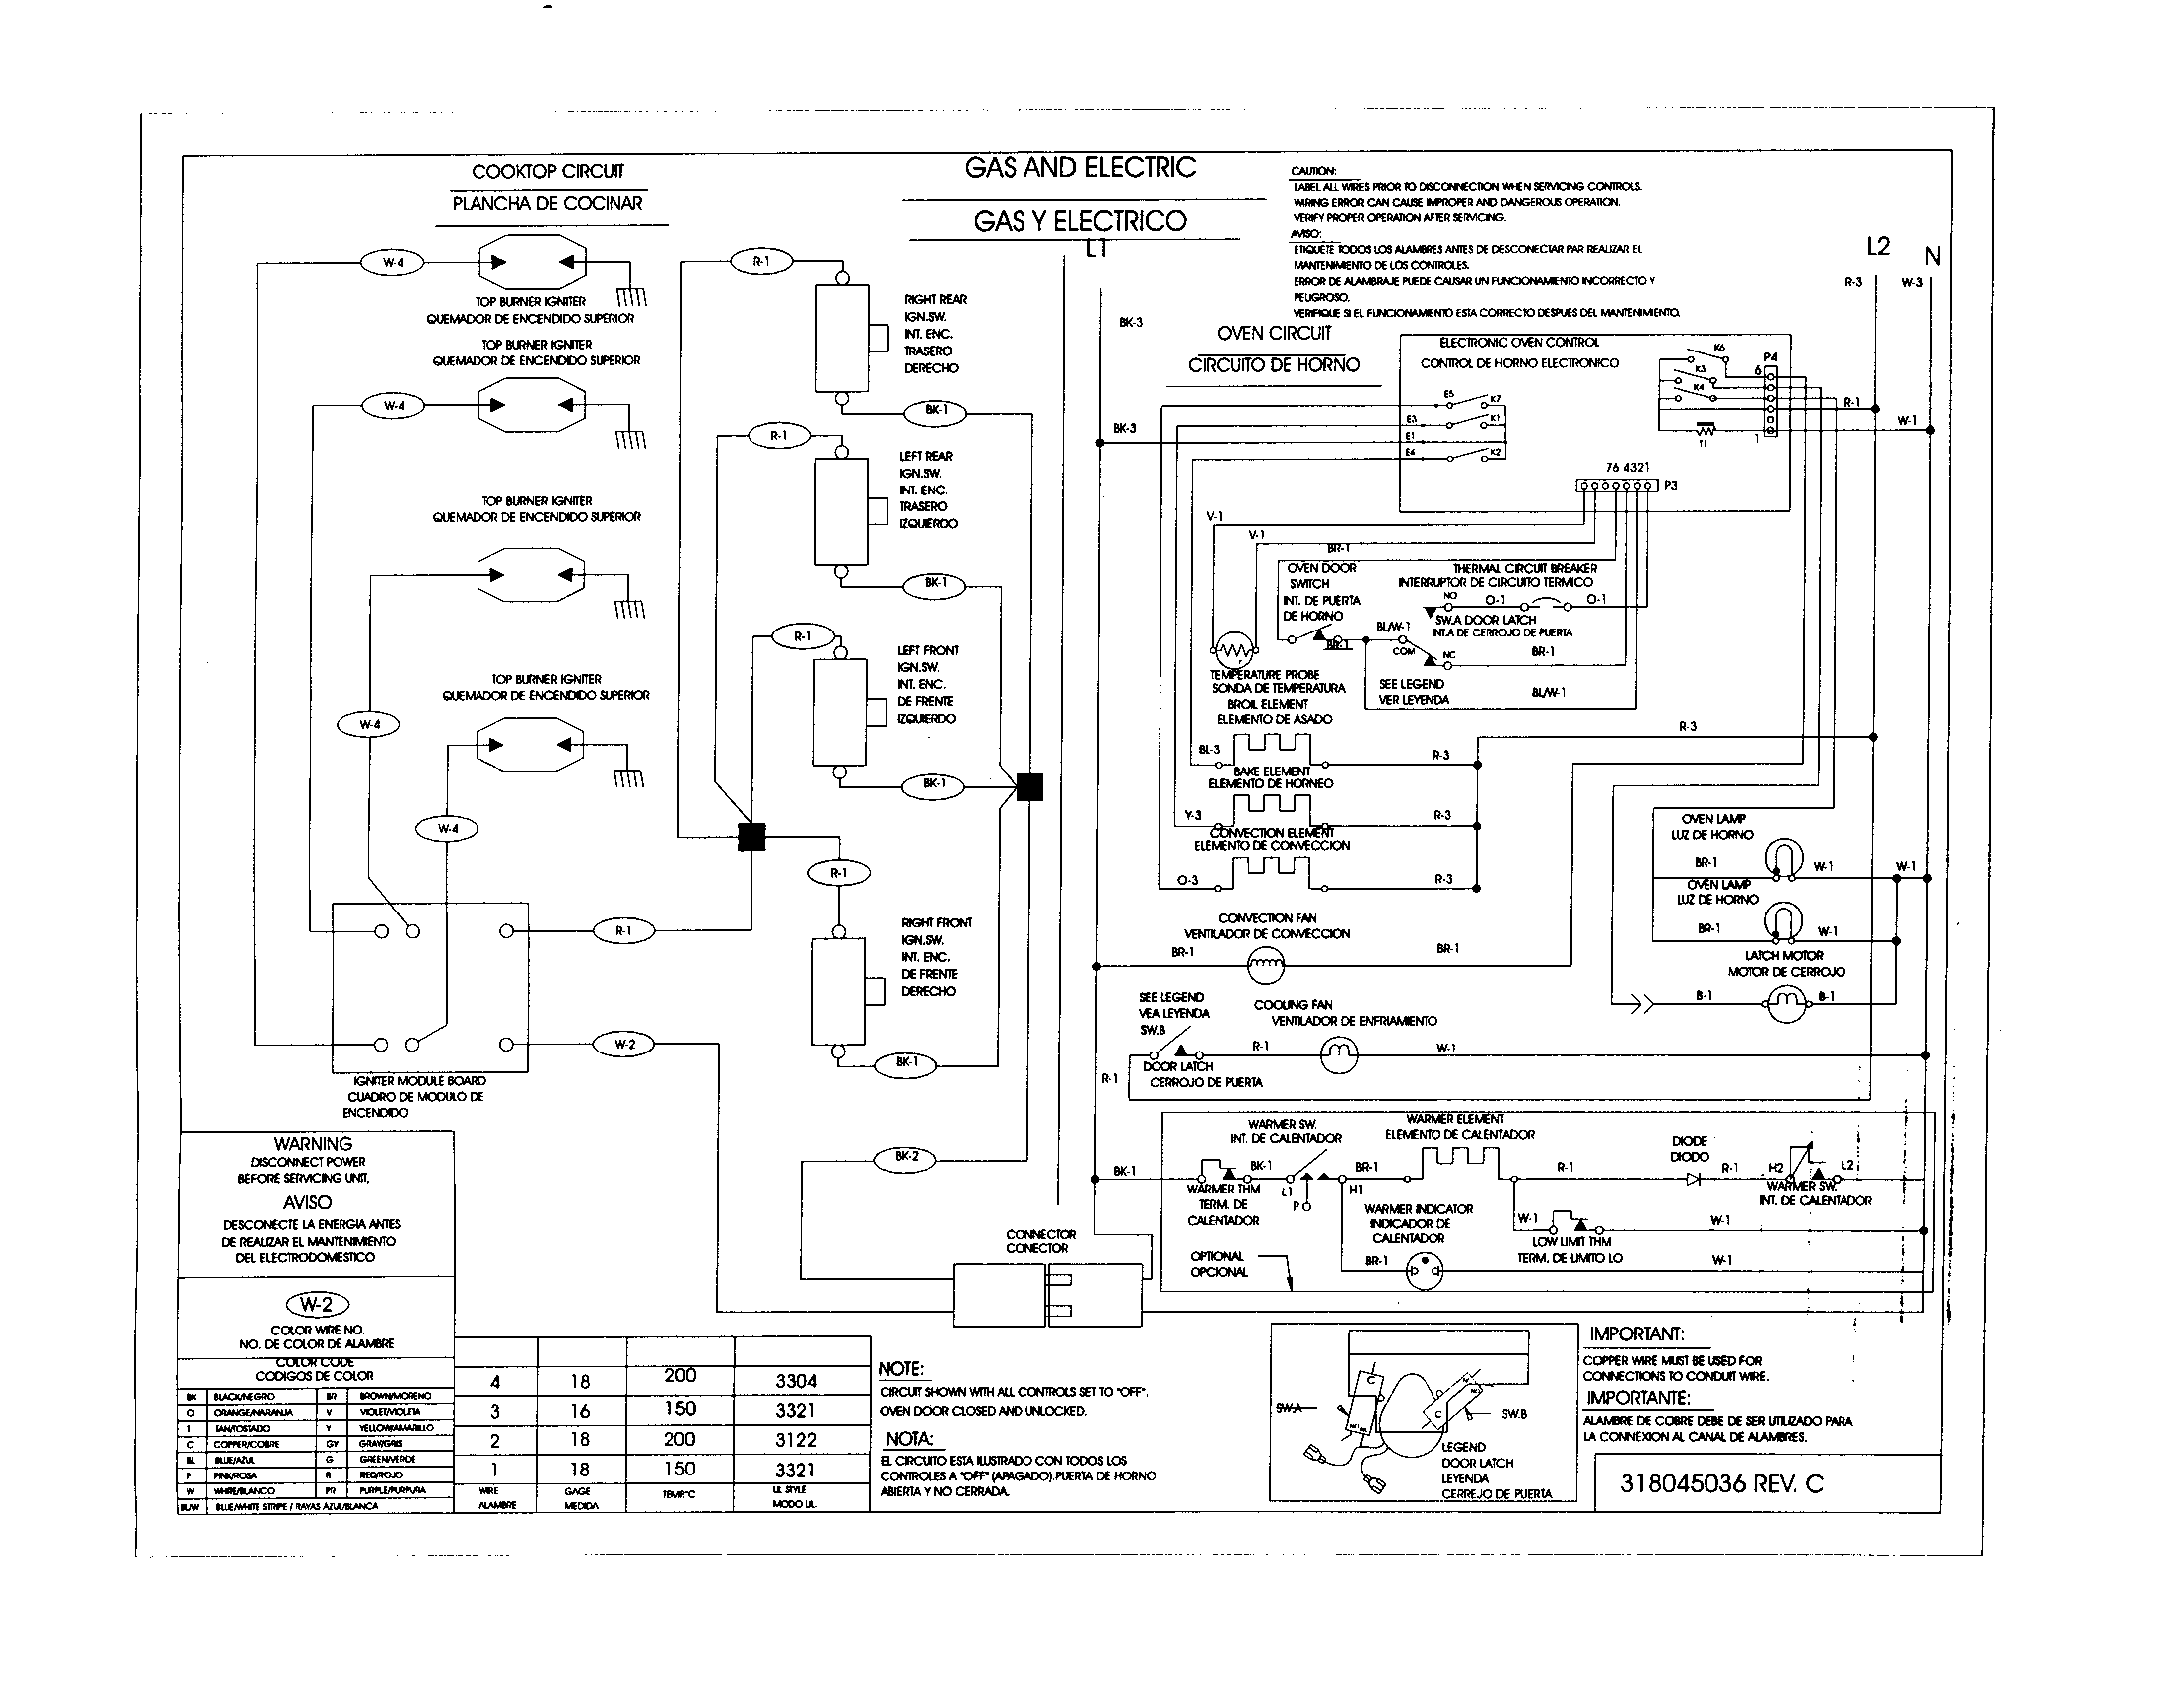 1989 ford 555 backhoe wiring diagram schematic diagrams rh ogmconsulting co Ford 555 Backhoe Loader Ford 555 Backhoe Service Manual